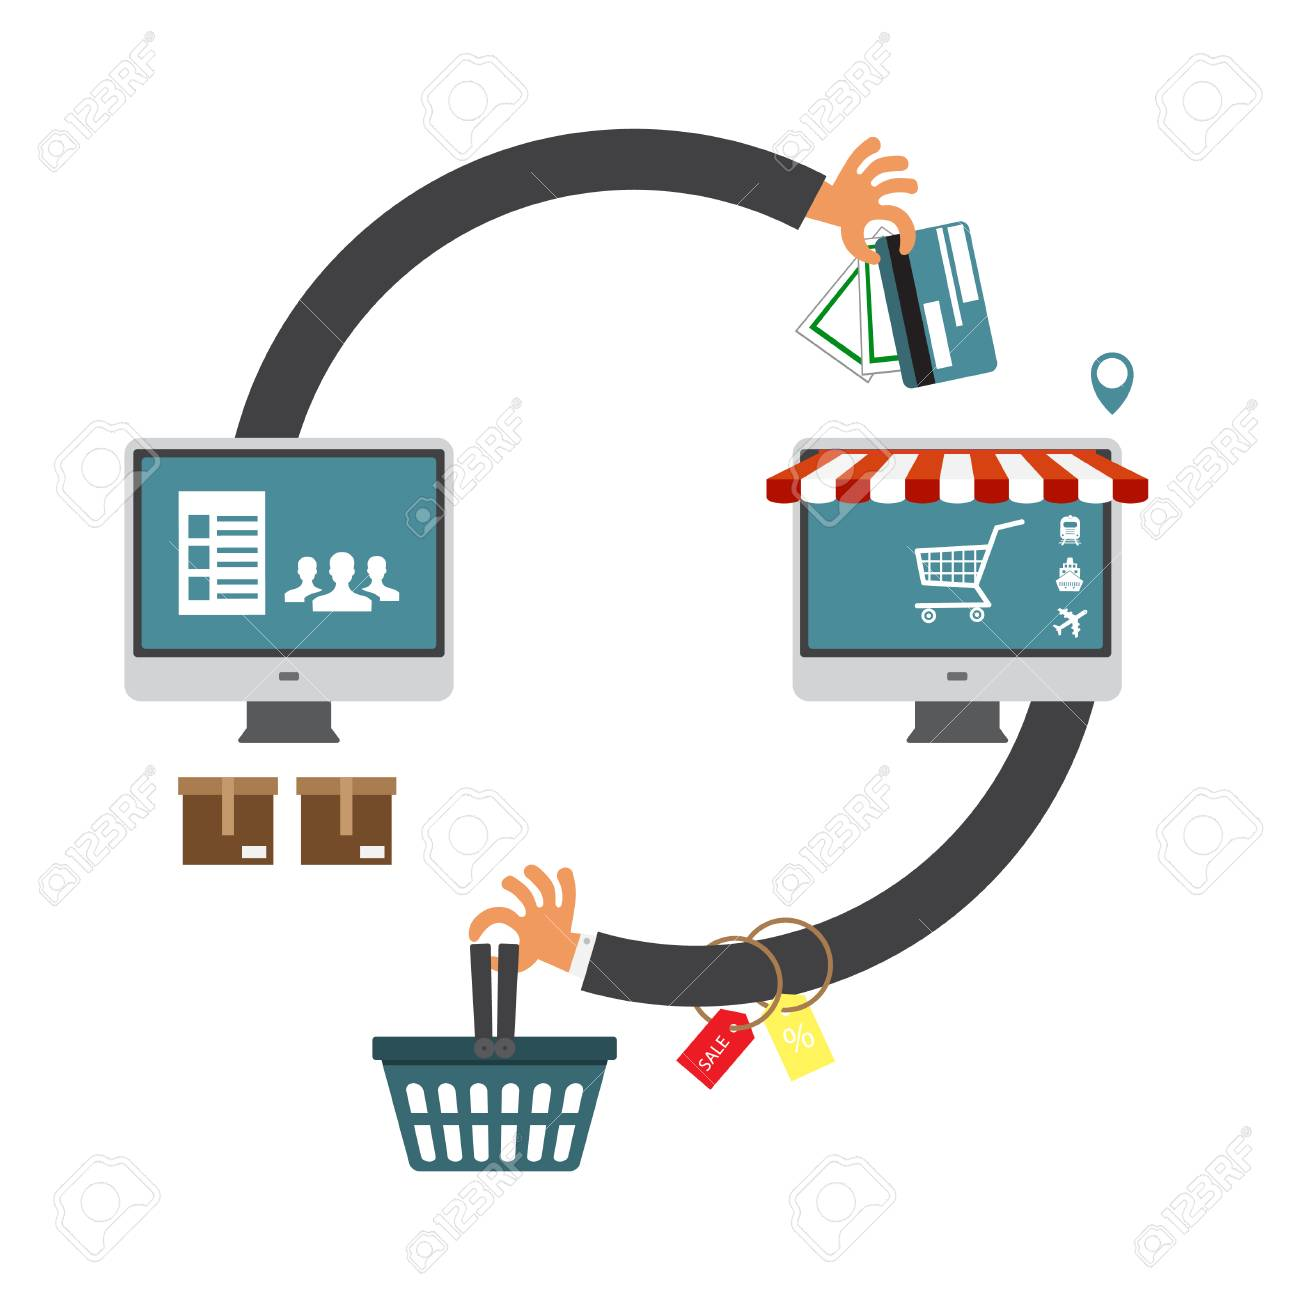 Computer Online Store Laptop Computer Online Shopping Concept Online Store Shopping